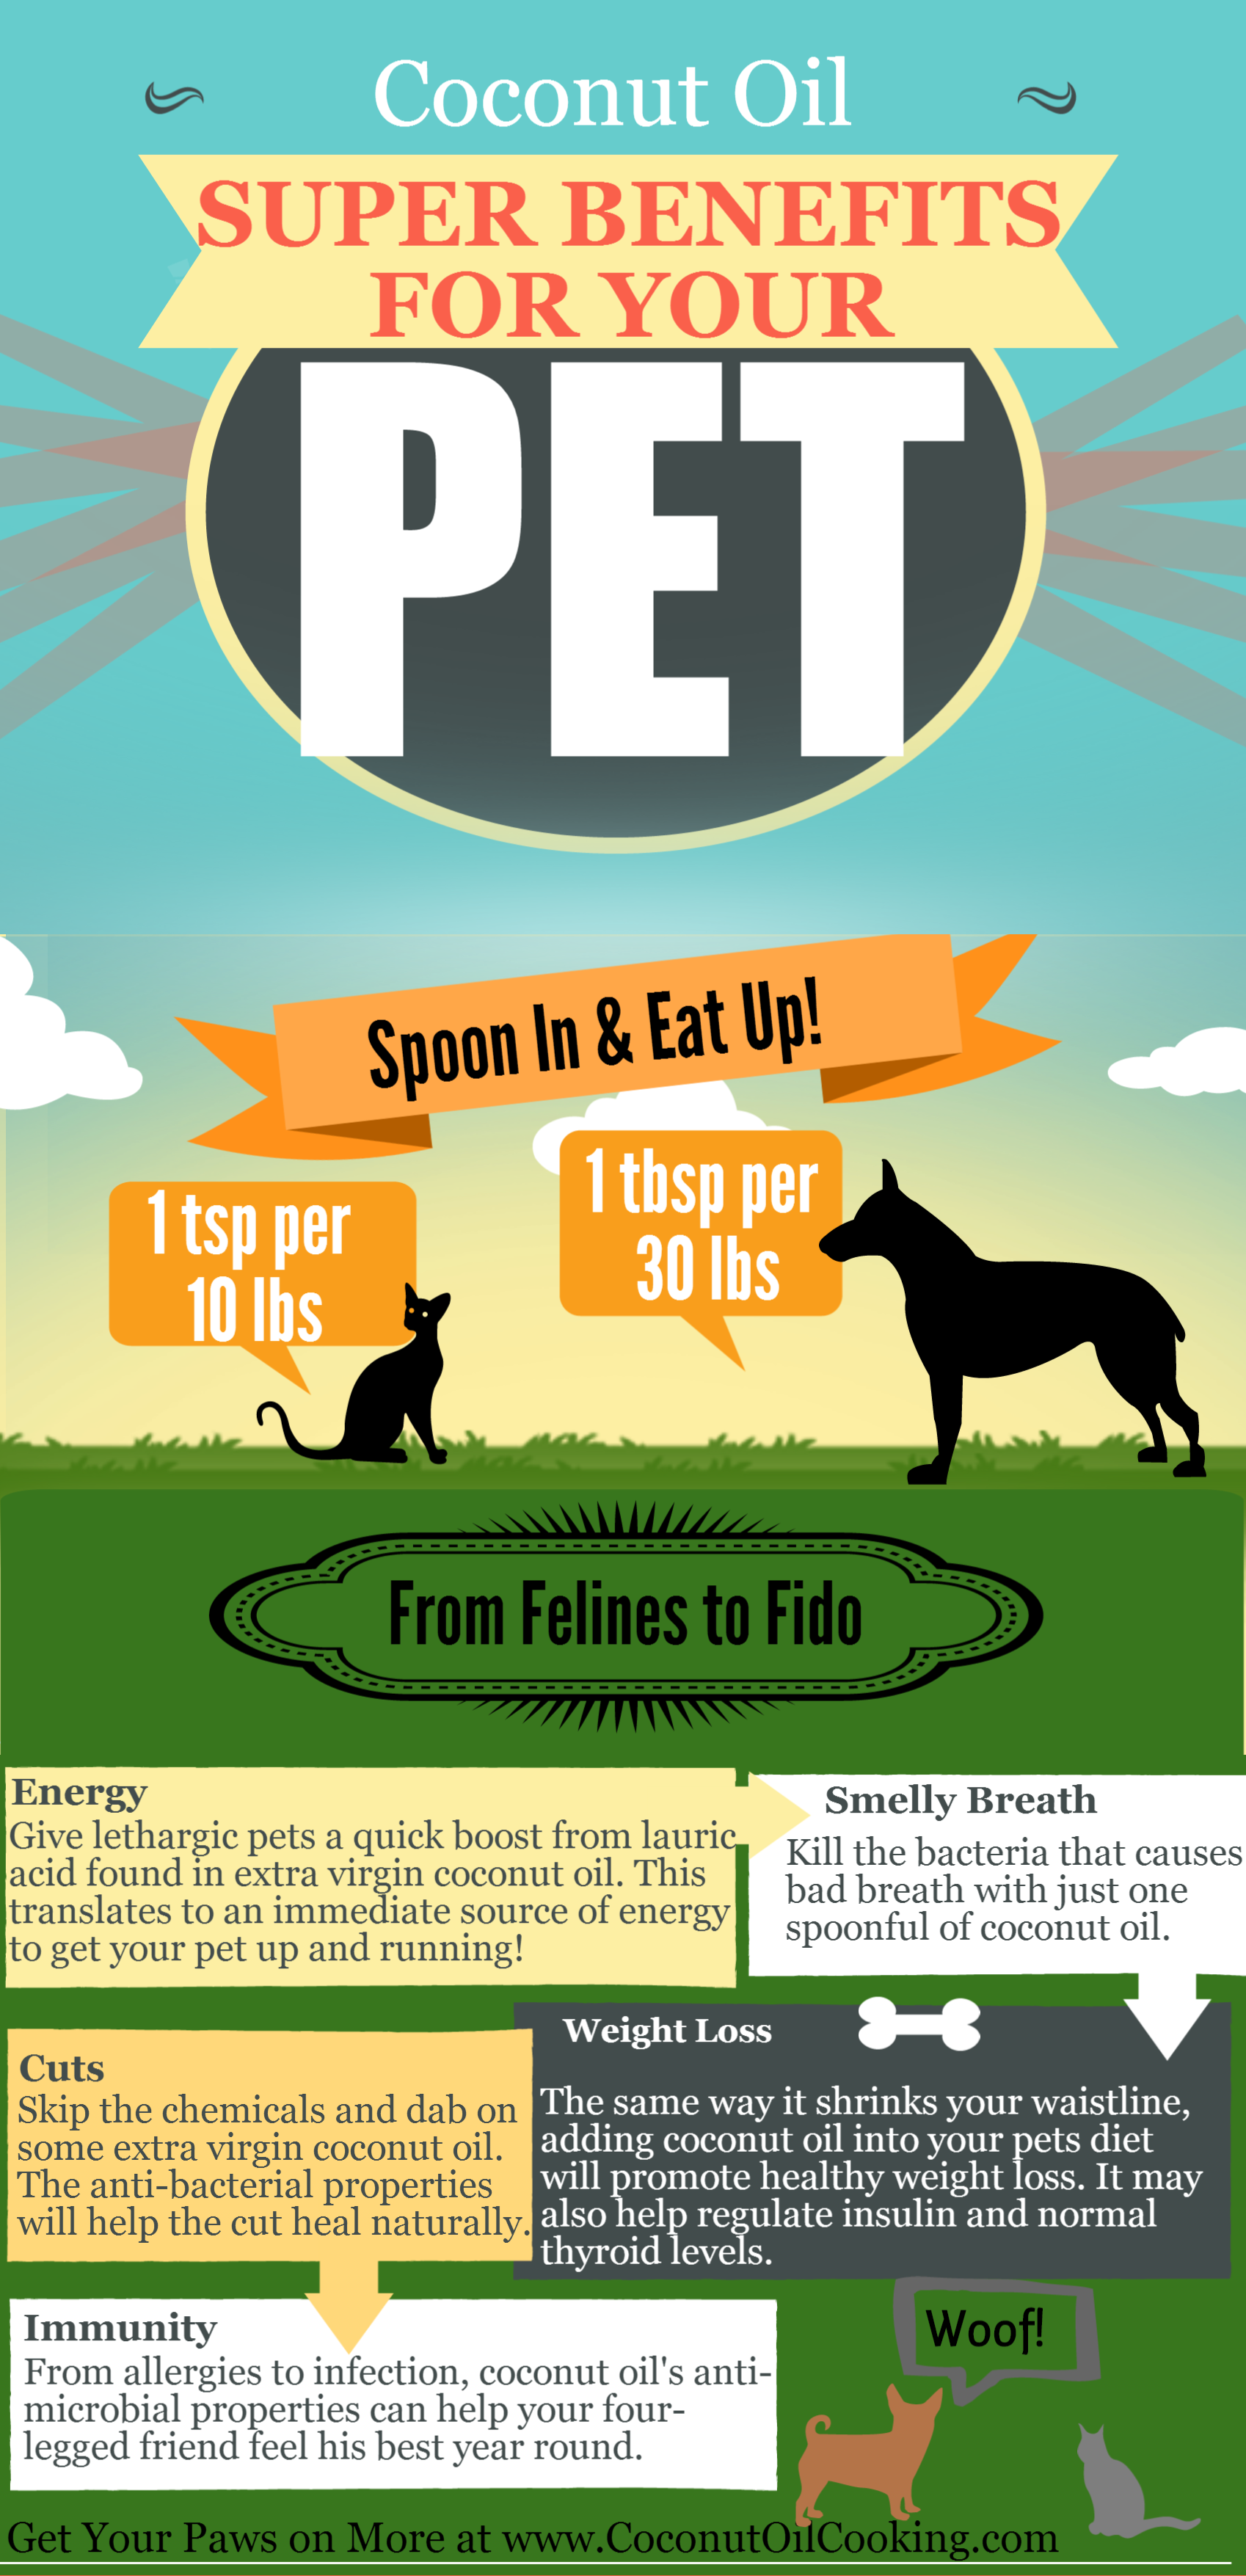 If your dog seems tired or uncomfortable or has diarrhea, reduce the amount temporarily. It may also be helpful to give the small amounts of coconut oil in divided doses throughout the day. Coconut oil is best given with food. Solid or liquid coconut oil can be added to food at any meal. Solid coconut oil can easily be melted quickly in hot water.